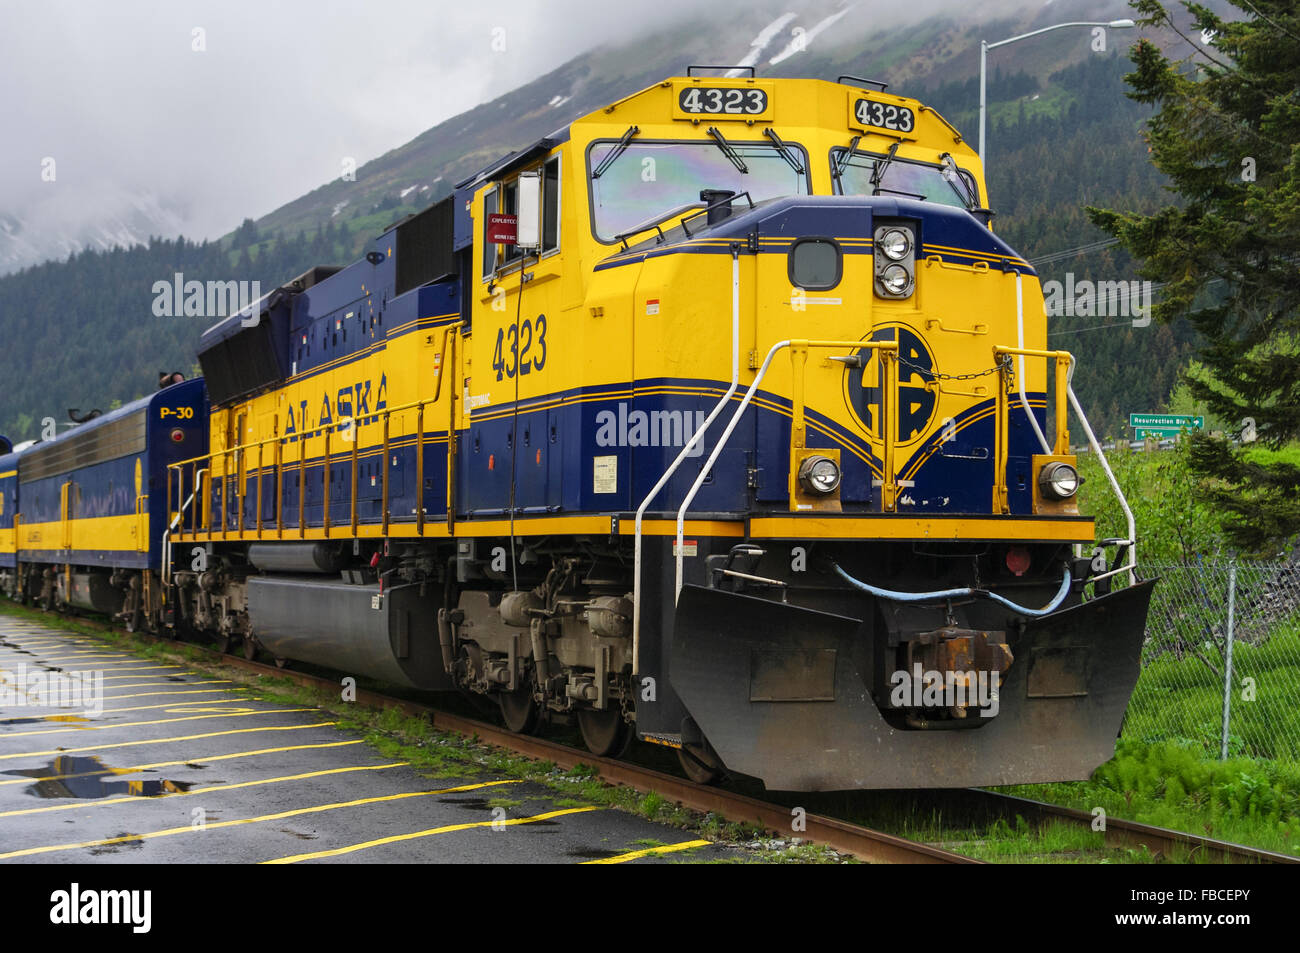 EMD SD70MAC diesel locomotive of the Alaska Railroad, registration number 4323, in yellow and blue ARR livery. Seward, - Stock Image